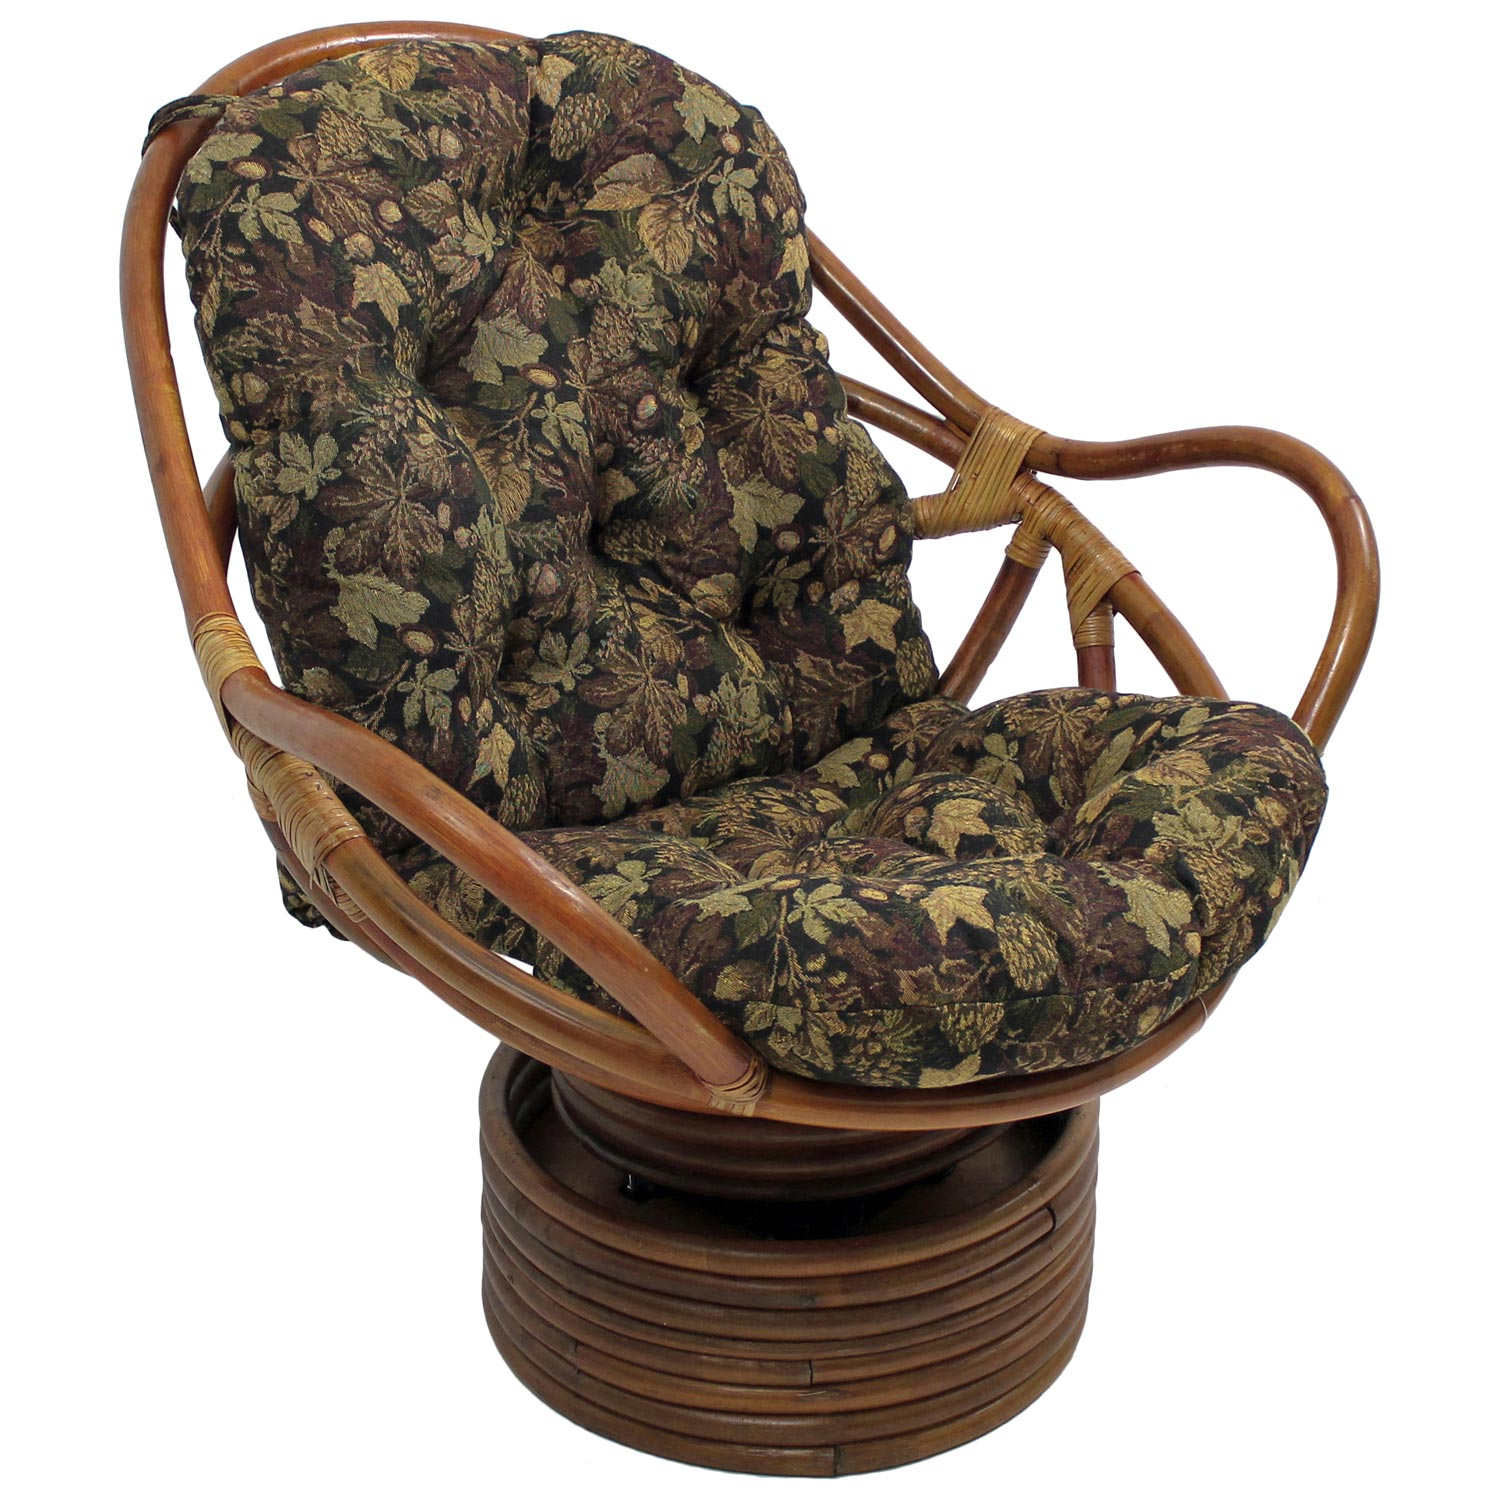 Bali Rattan Swivel Rocker Chair   Tufted, Tapestry Cushion   INTC 3310 T ...